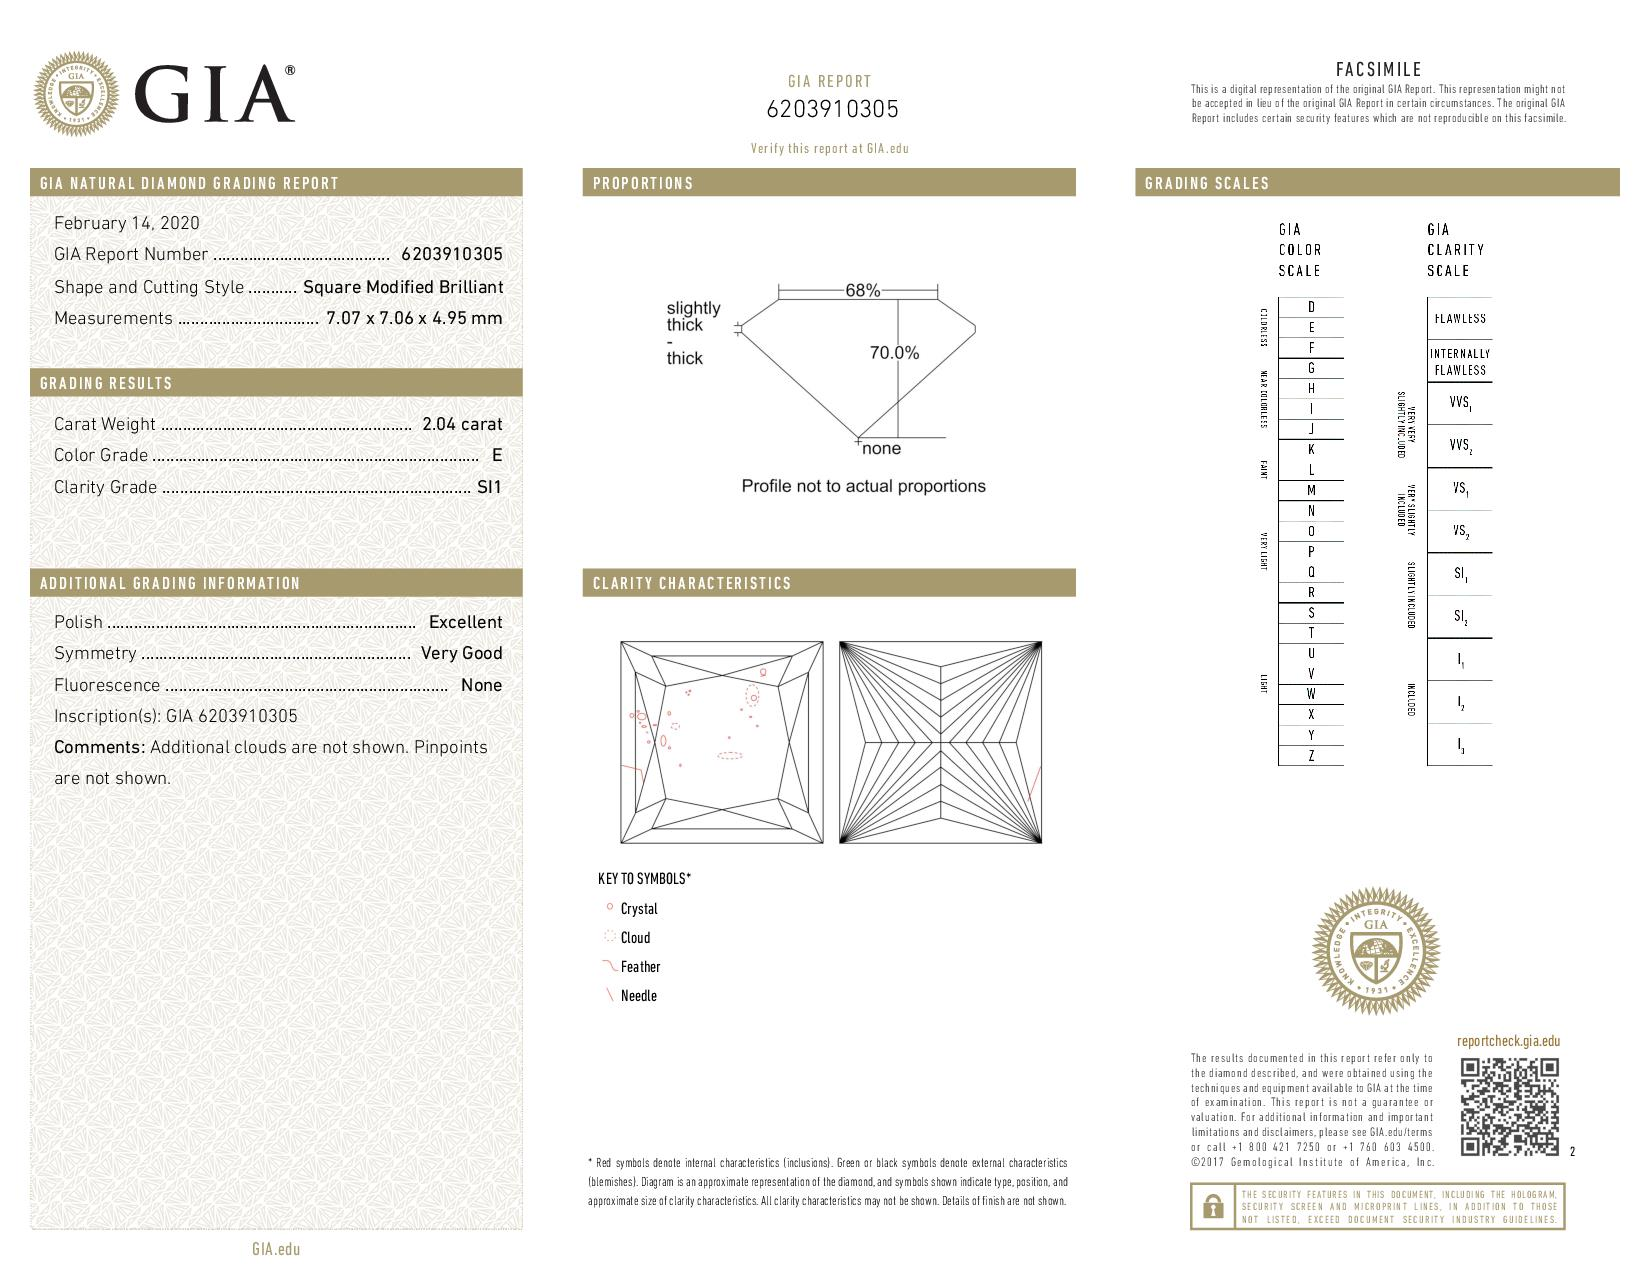 This is a 2.04 carat princess shape, E color, SI1 clarity natural diamond accompanied by a GIA grading report.